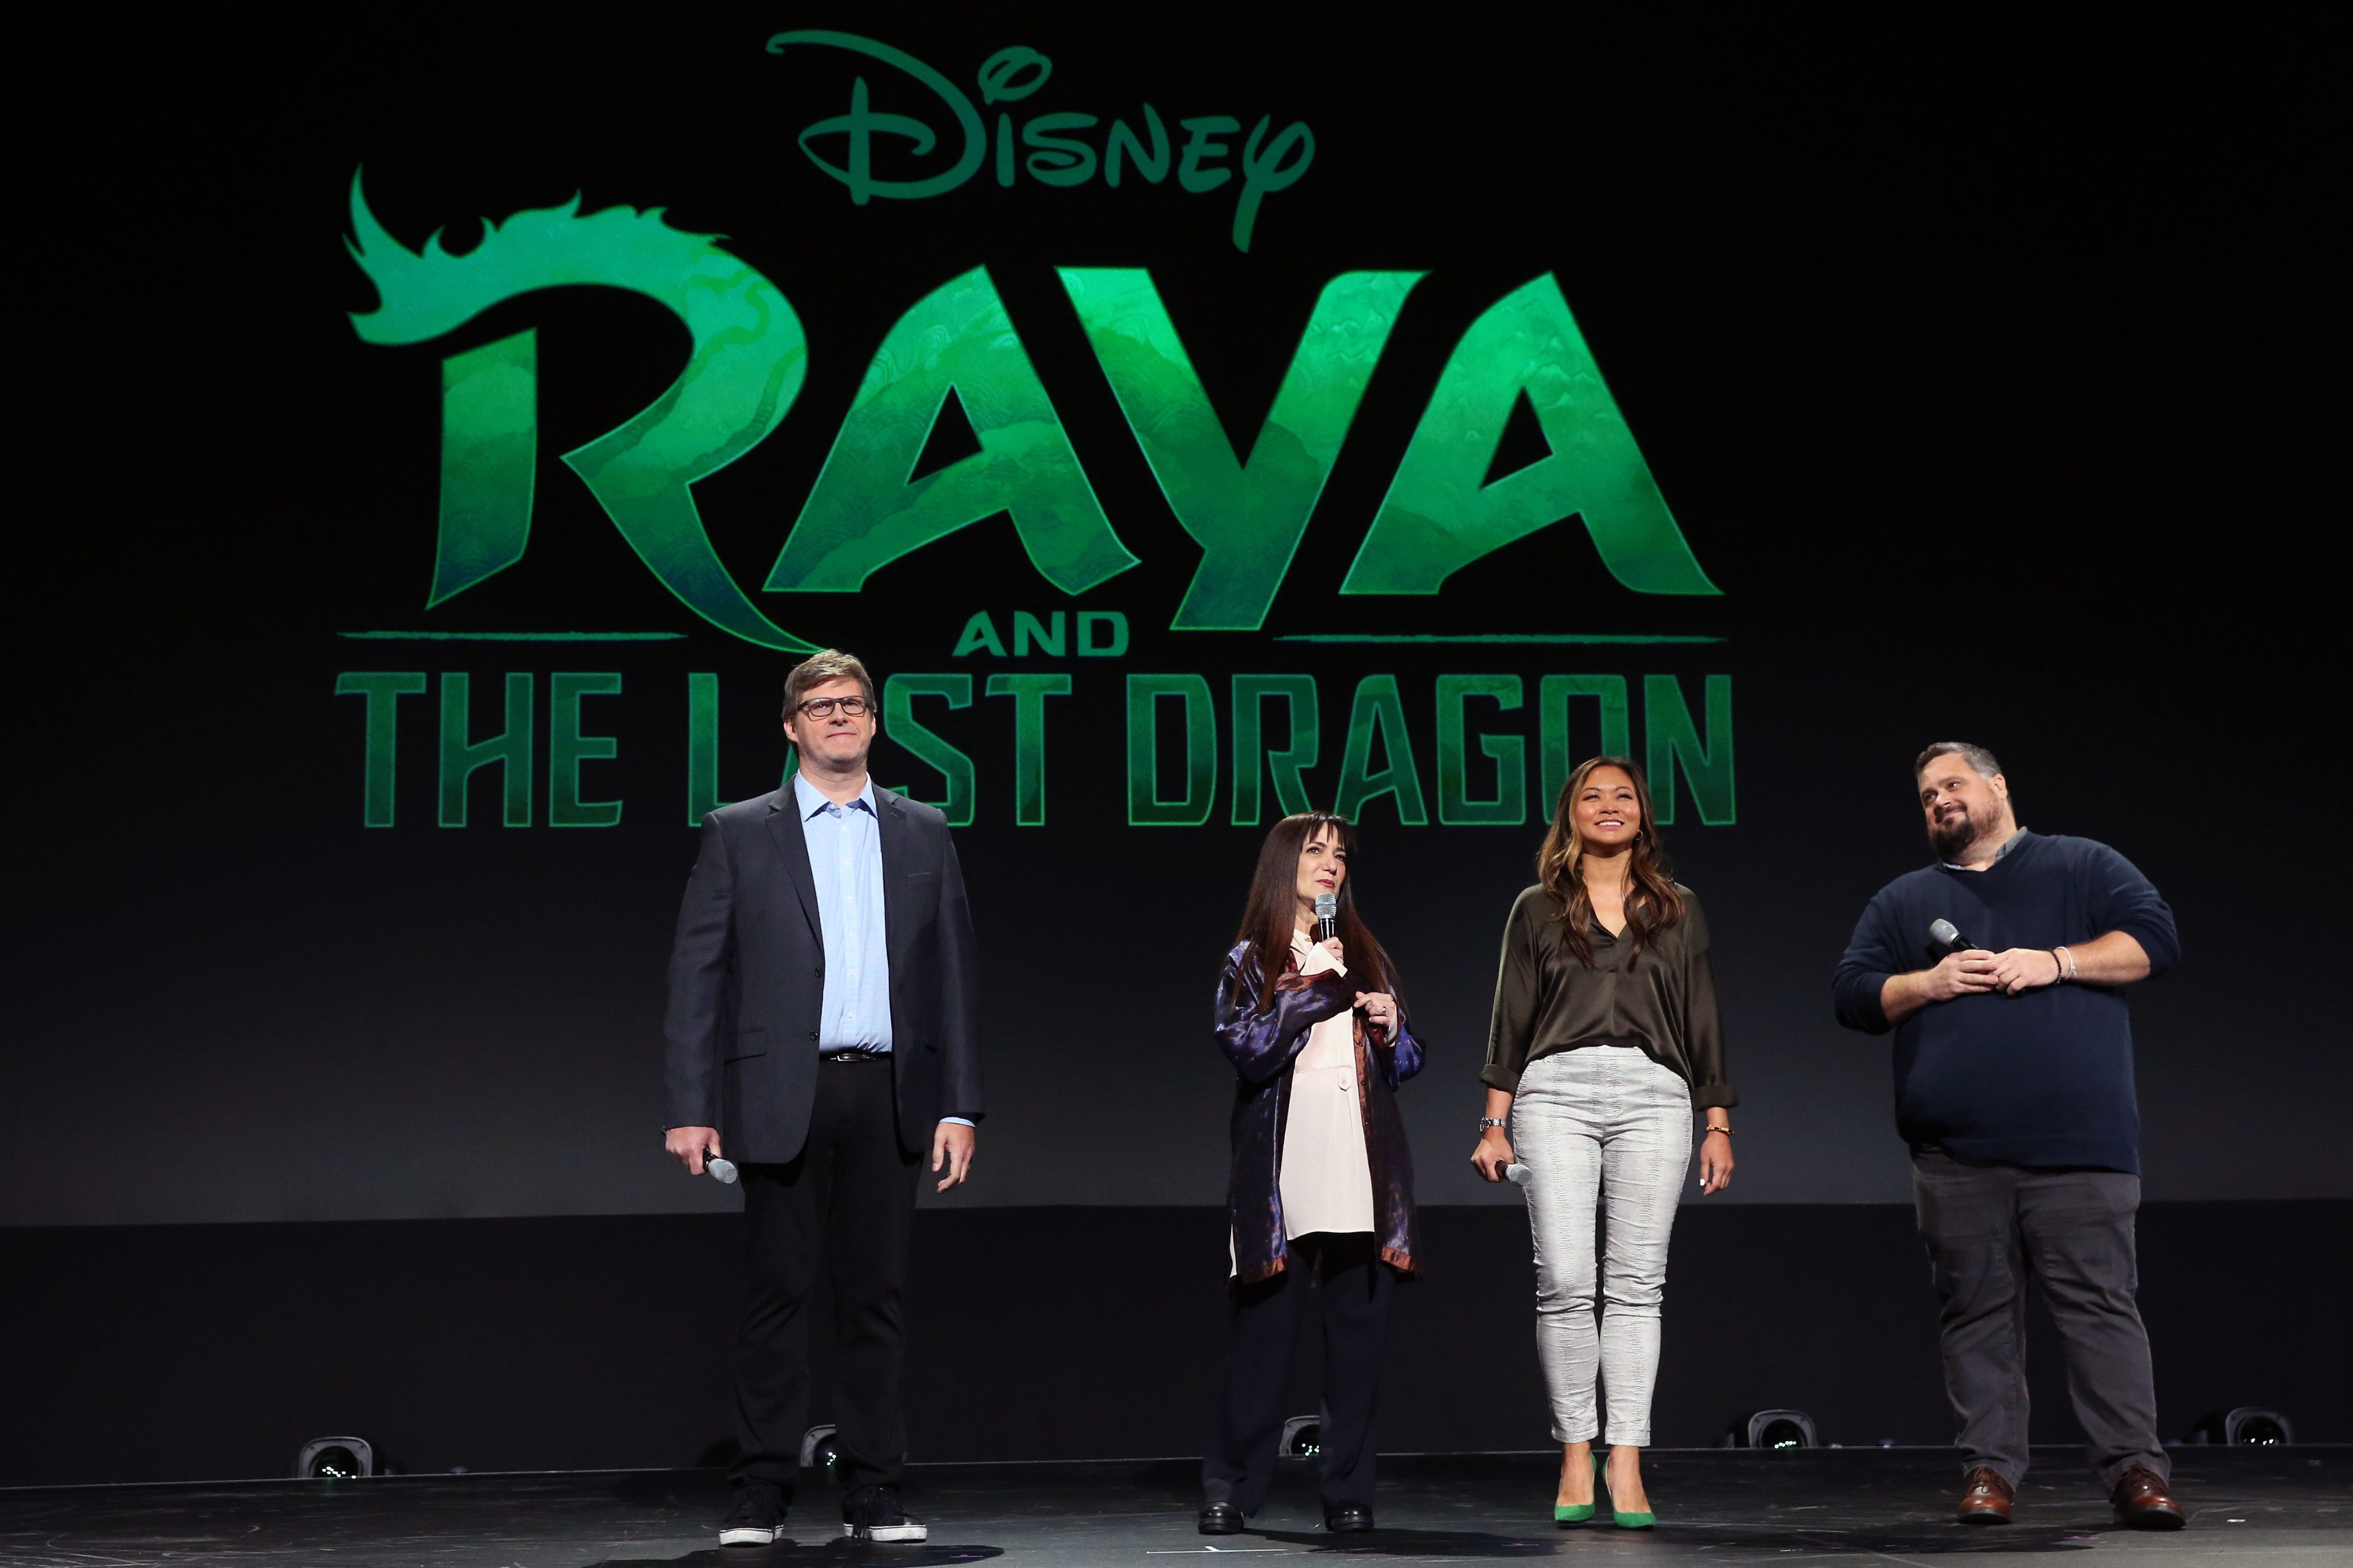 Disney announces new animation Raya and the Last Dragon from Crazy Rich Asians writer